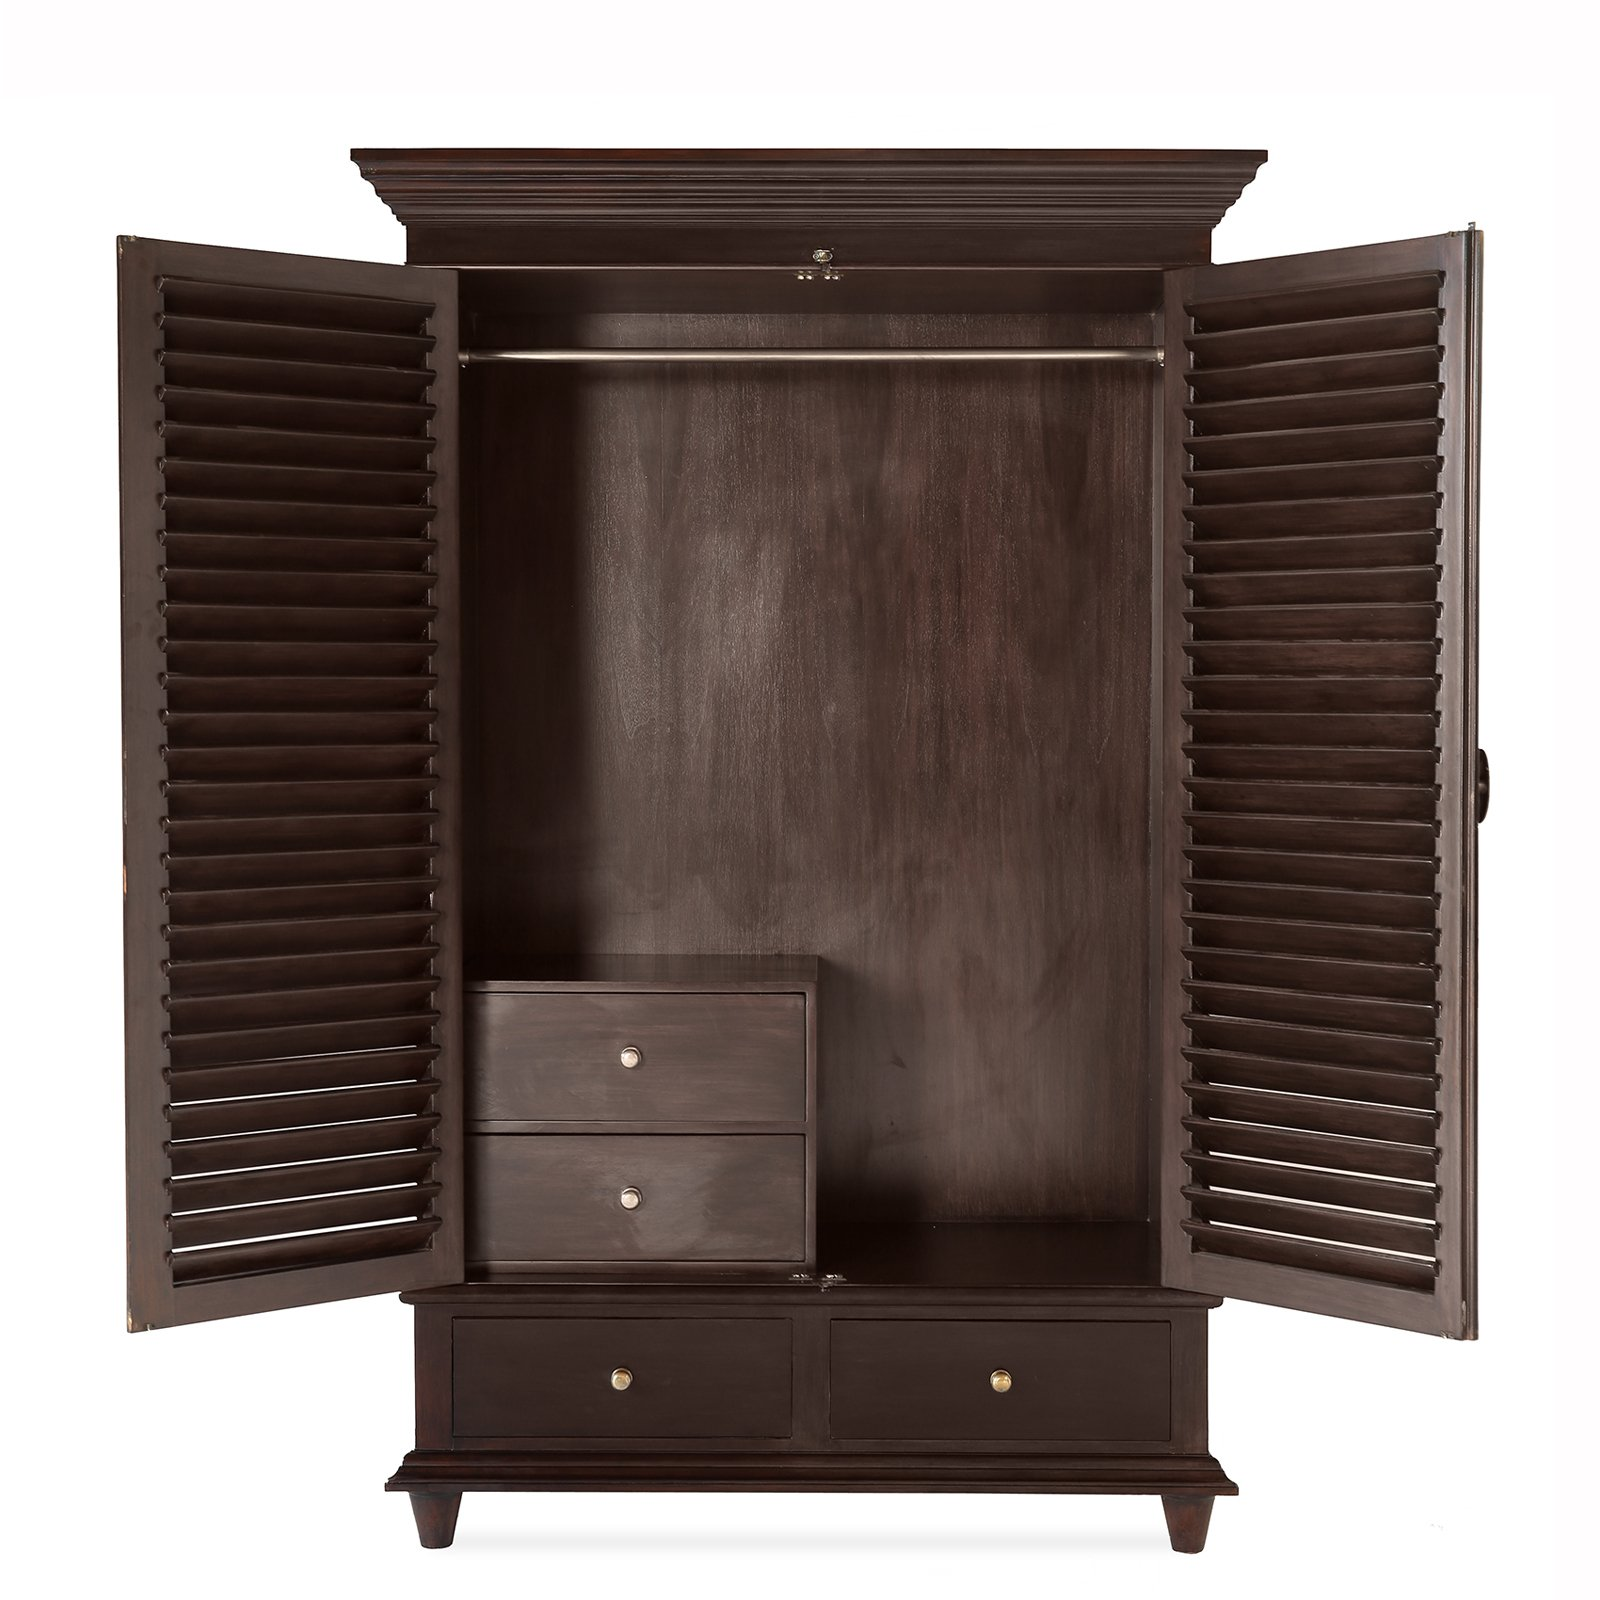 PLANTATION ARMOIRE 2 - STUART MEMBERY HOME COLLECTION